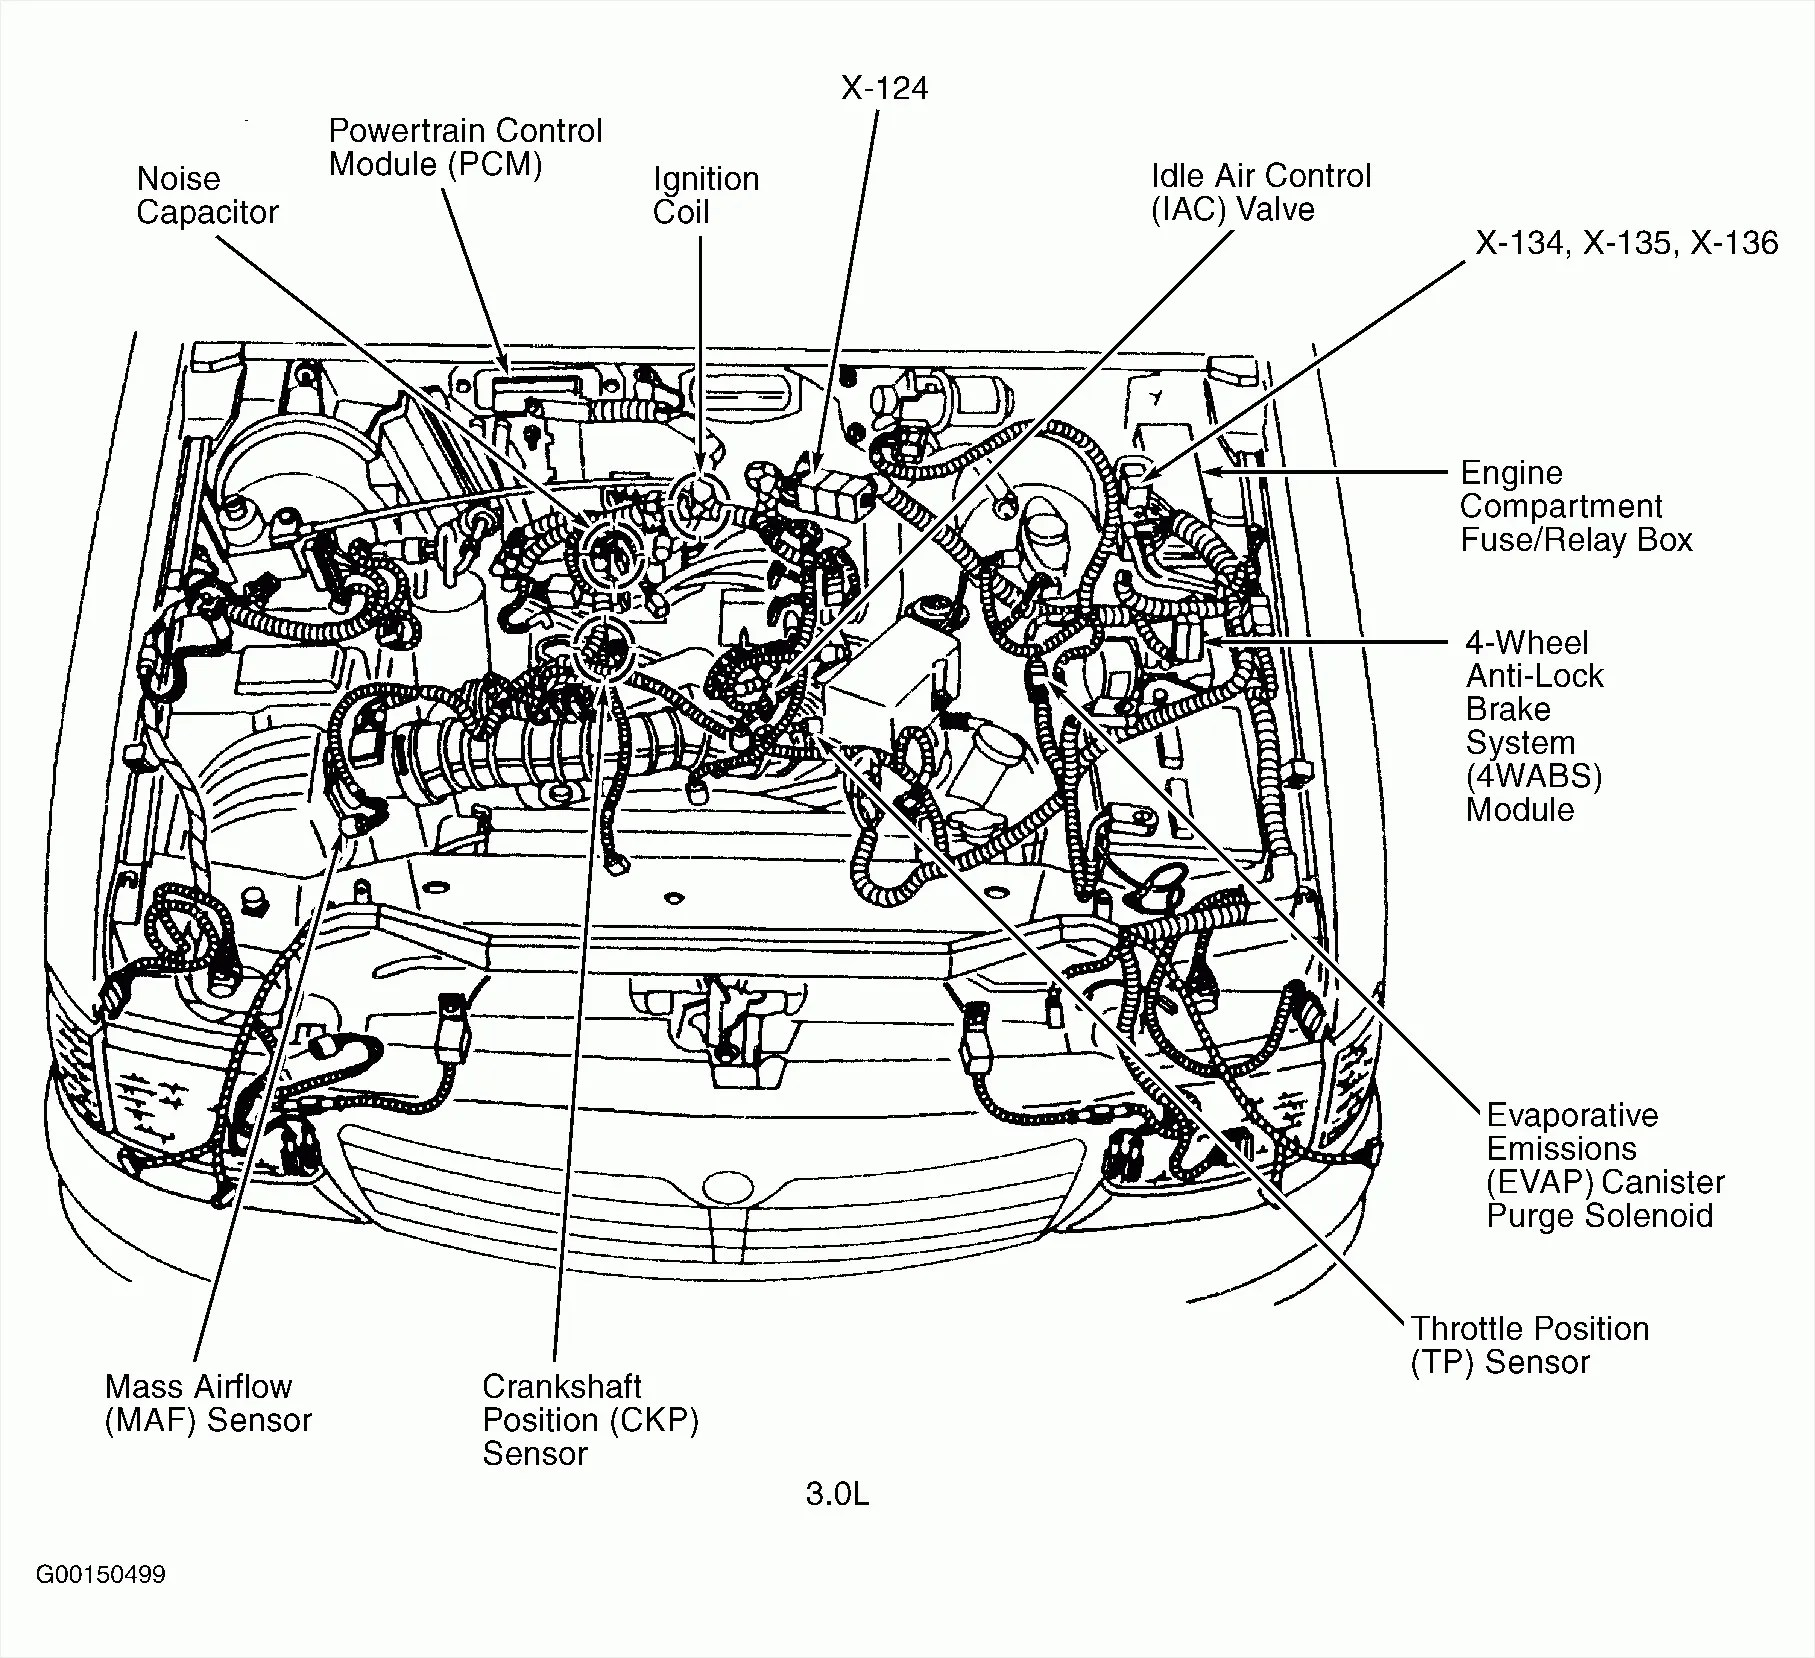 hight resolution of ford 4 0 engine diagram 1995 schema diagram database 4 0 engine diagram wiring diagram ford